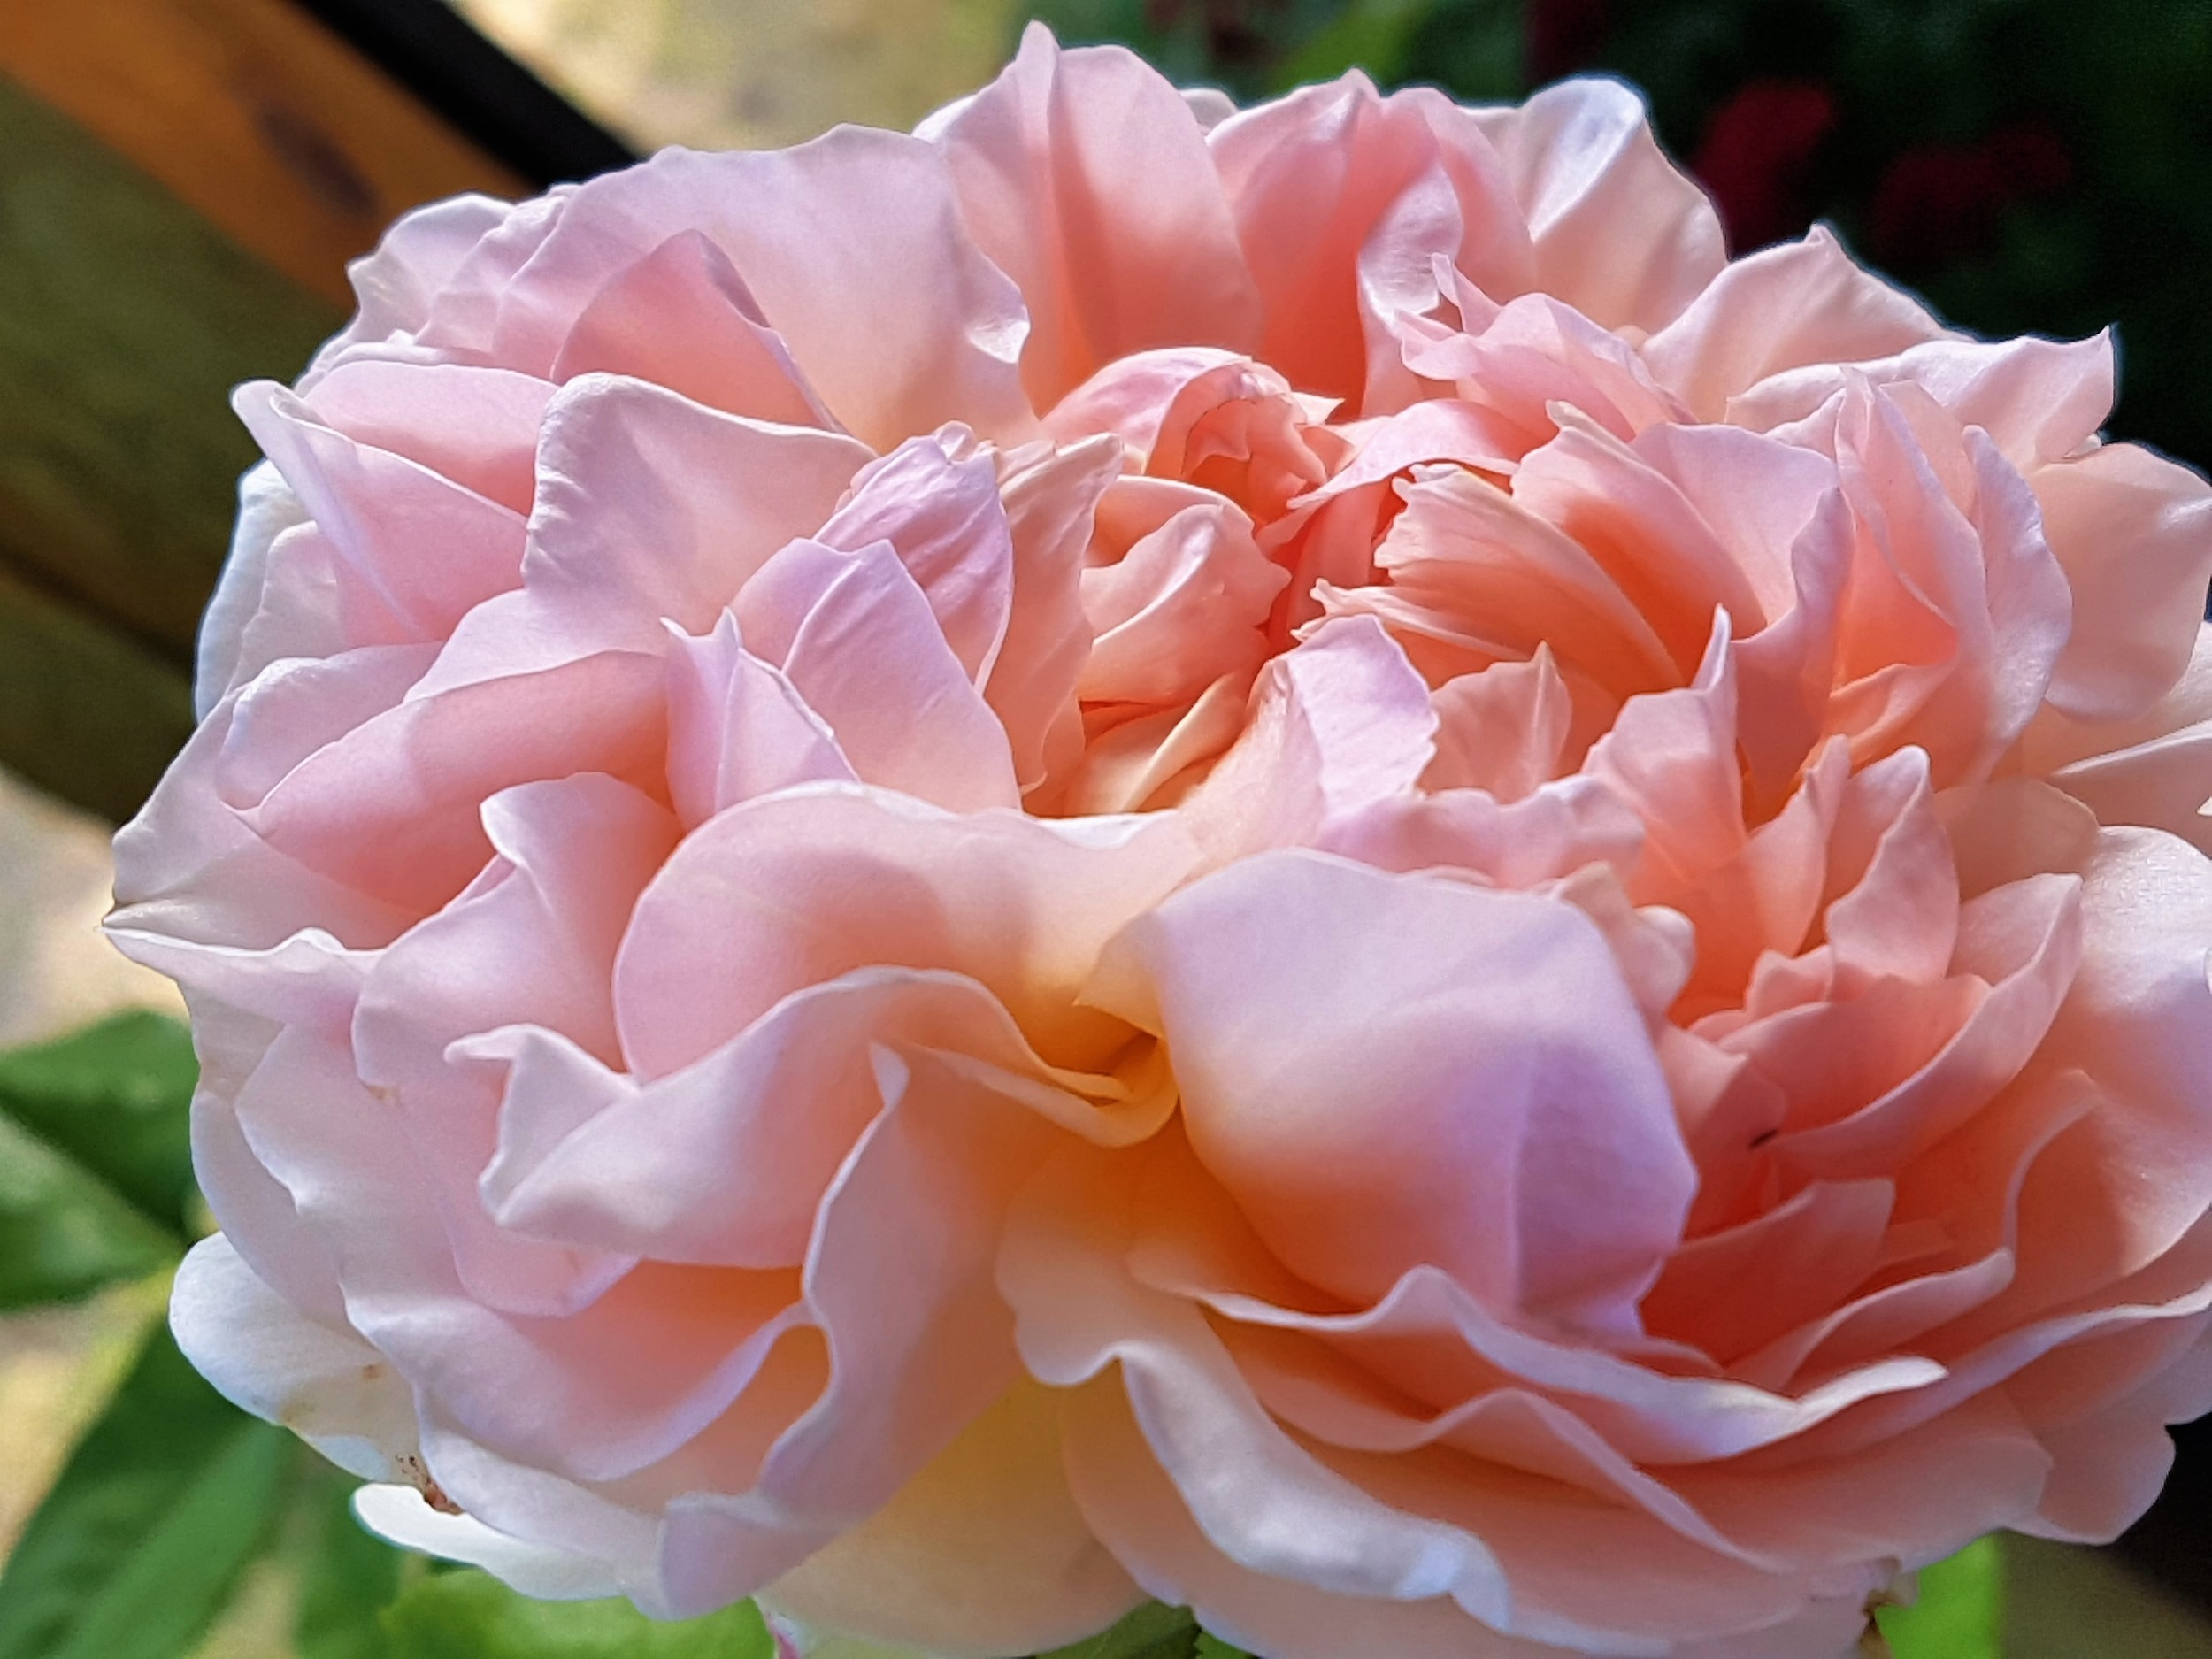 The amazing English rose, Evelyn, developed for Crabtree and Evelyn by David Austin.